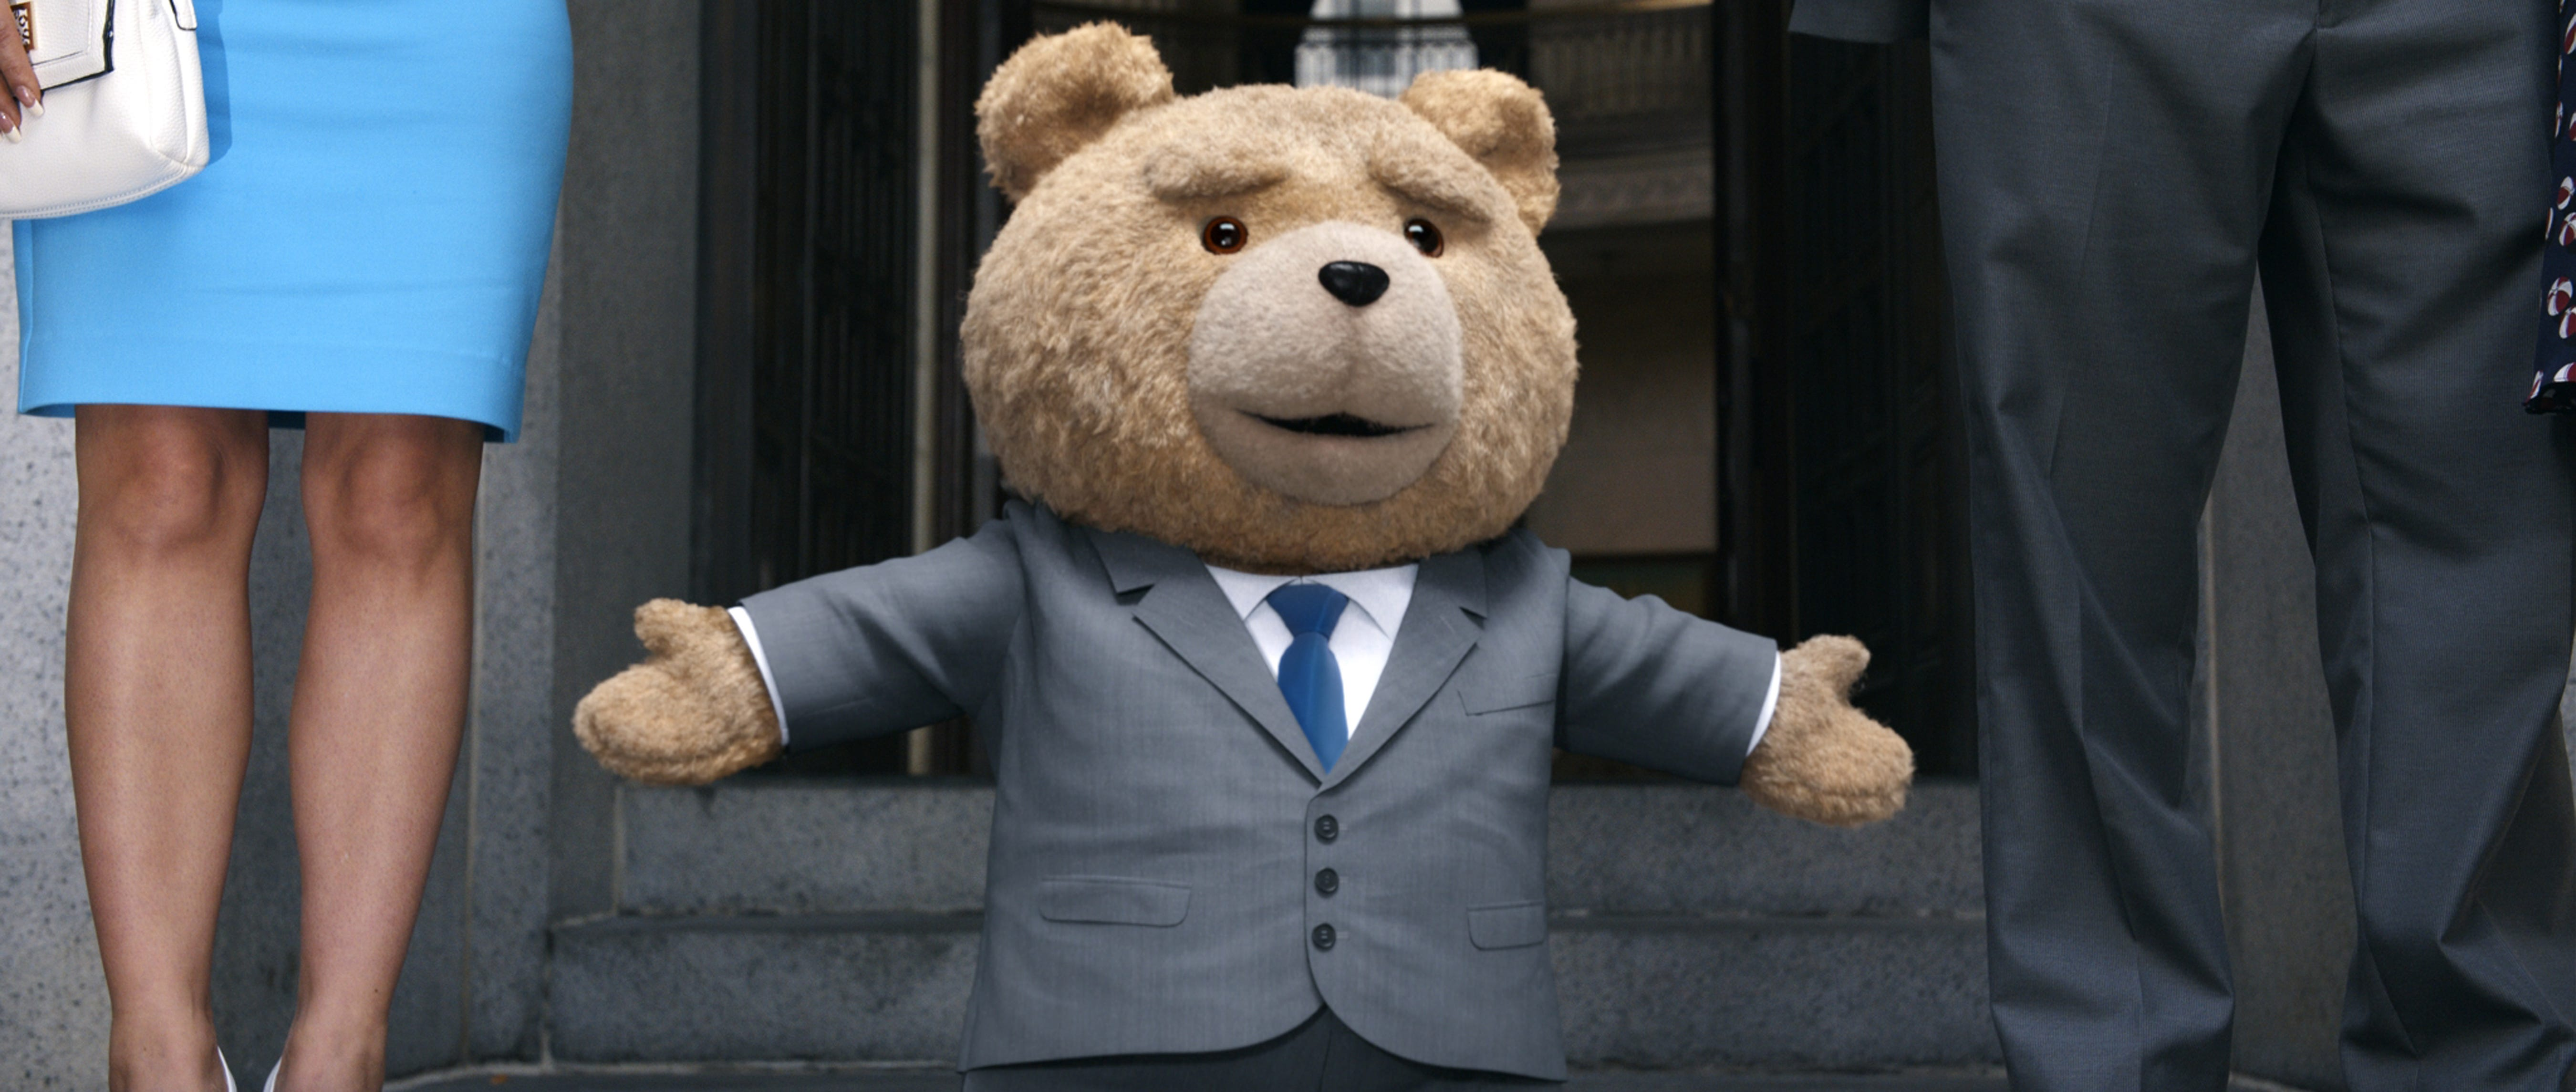 Bears in suits